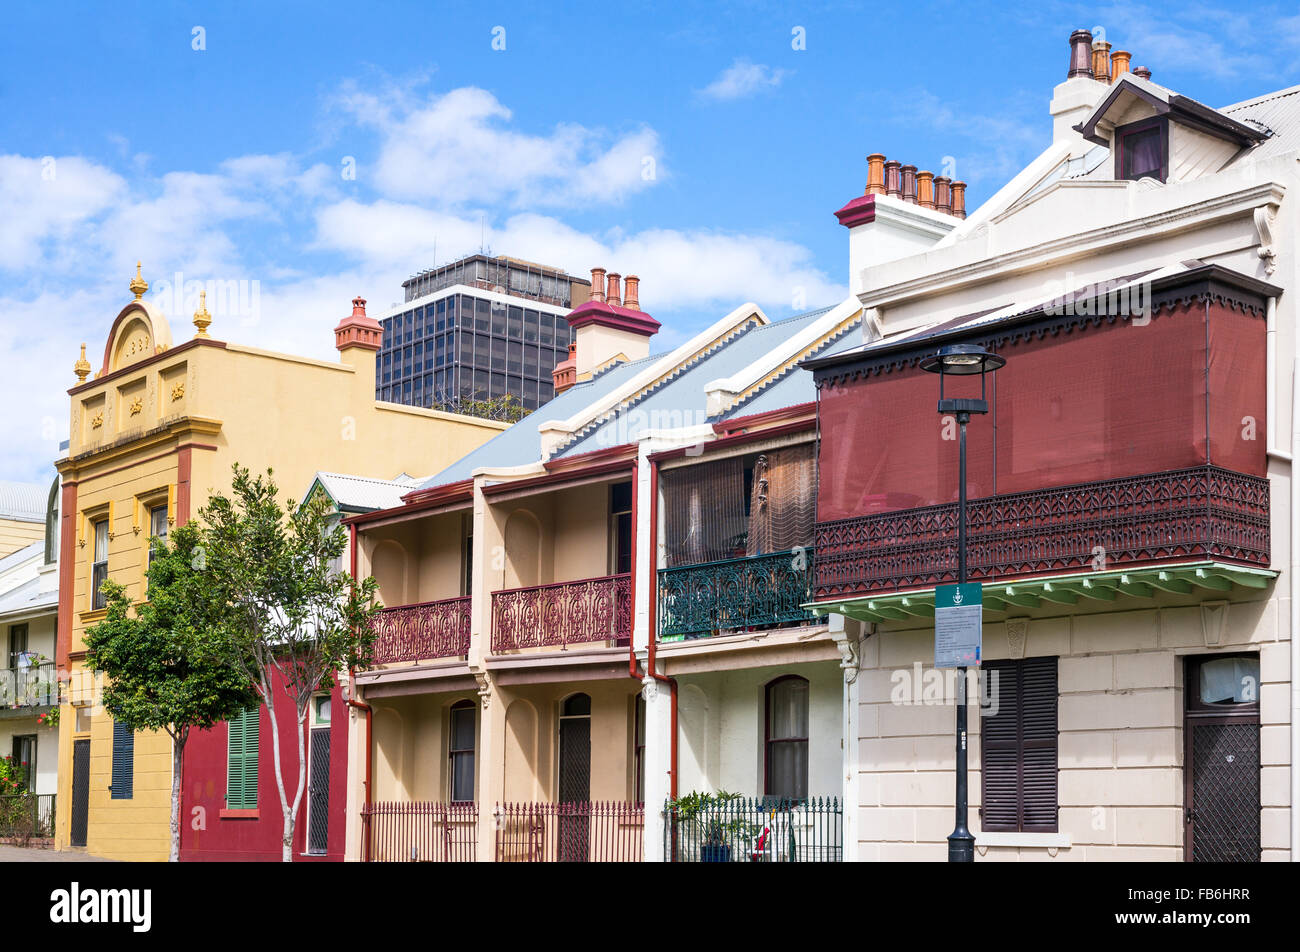 Australia, Sydney, the traditional houses of Forbes Street - Stock Image